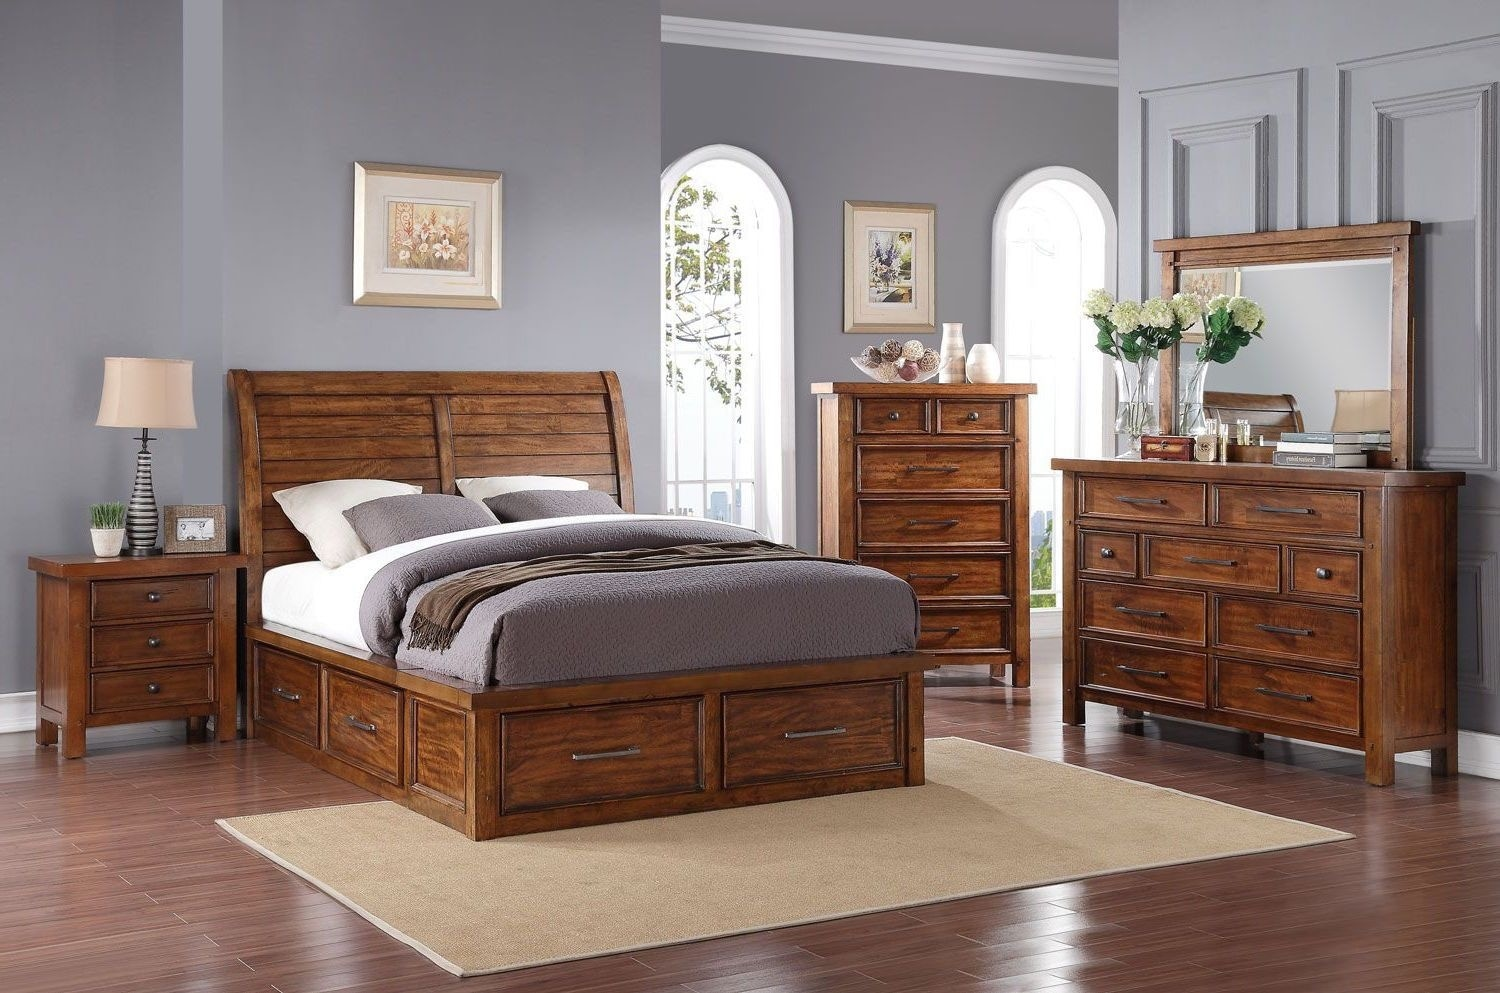 Sonoma 8-Piece King Storage Bedroom Package – Medium Brown